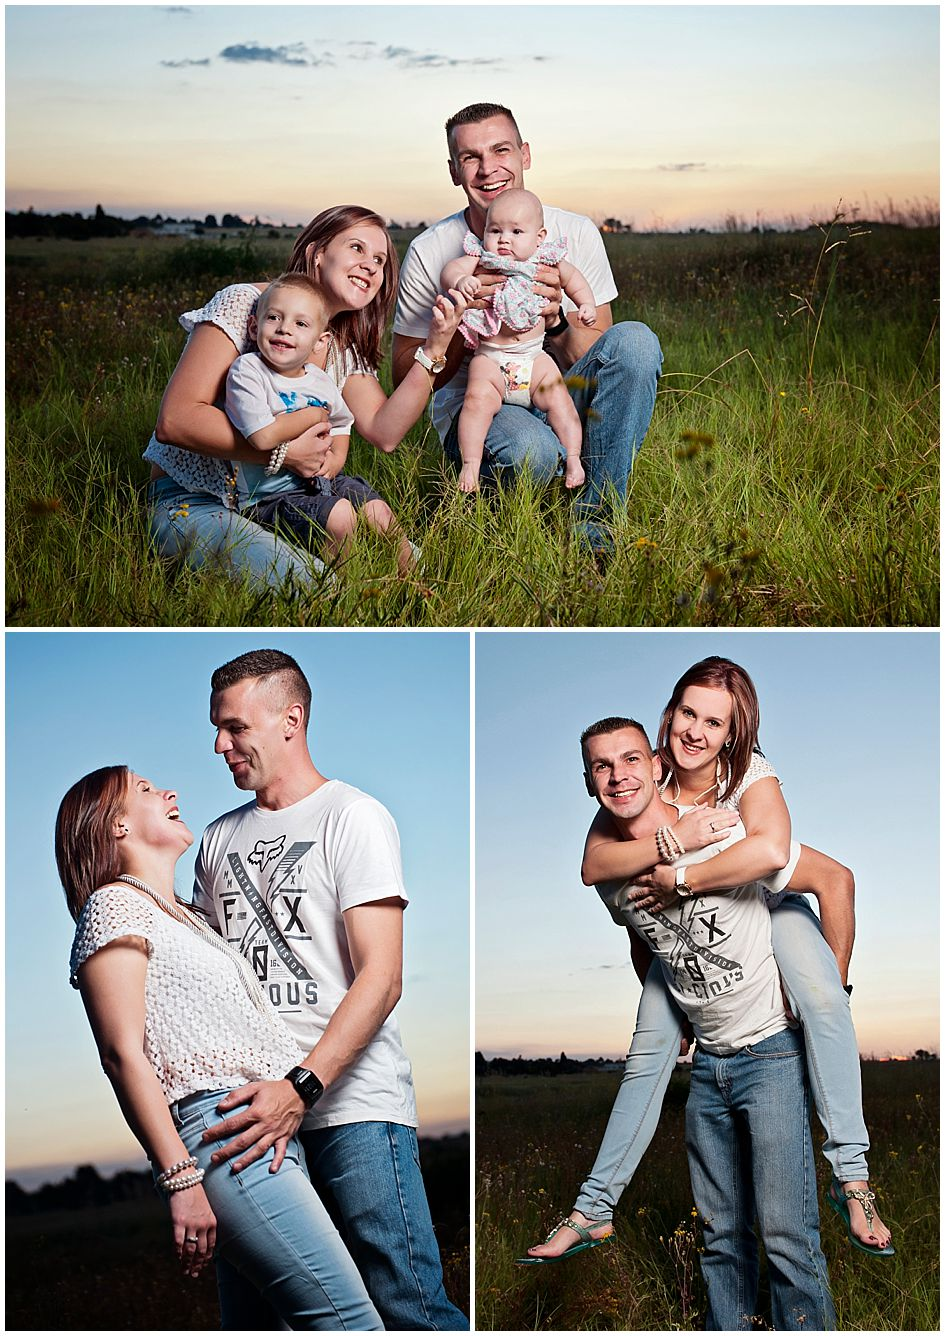 family-outdoor-field-evening-shoot.jpg